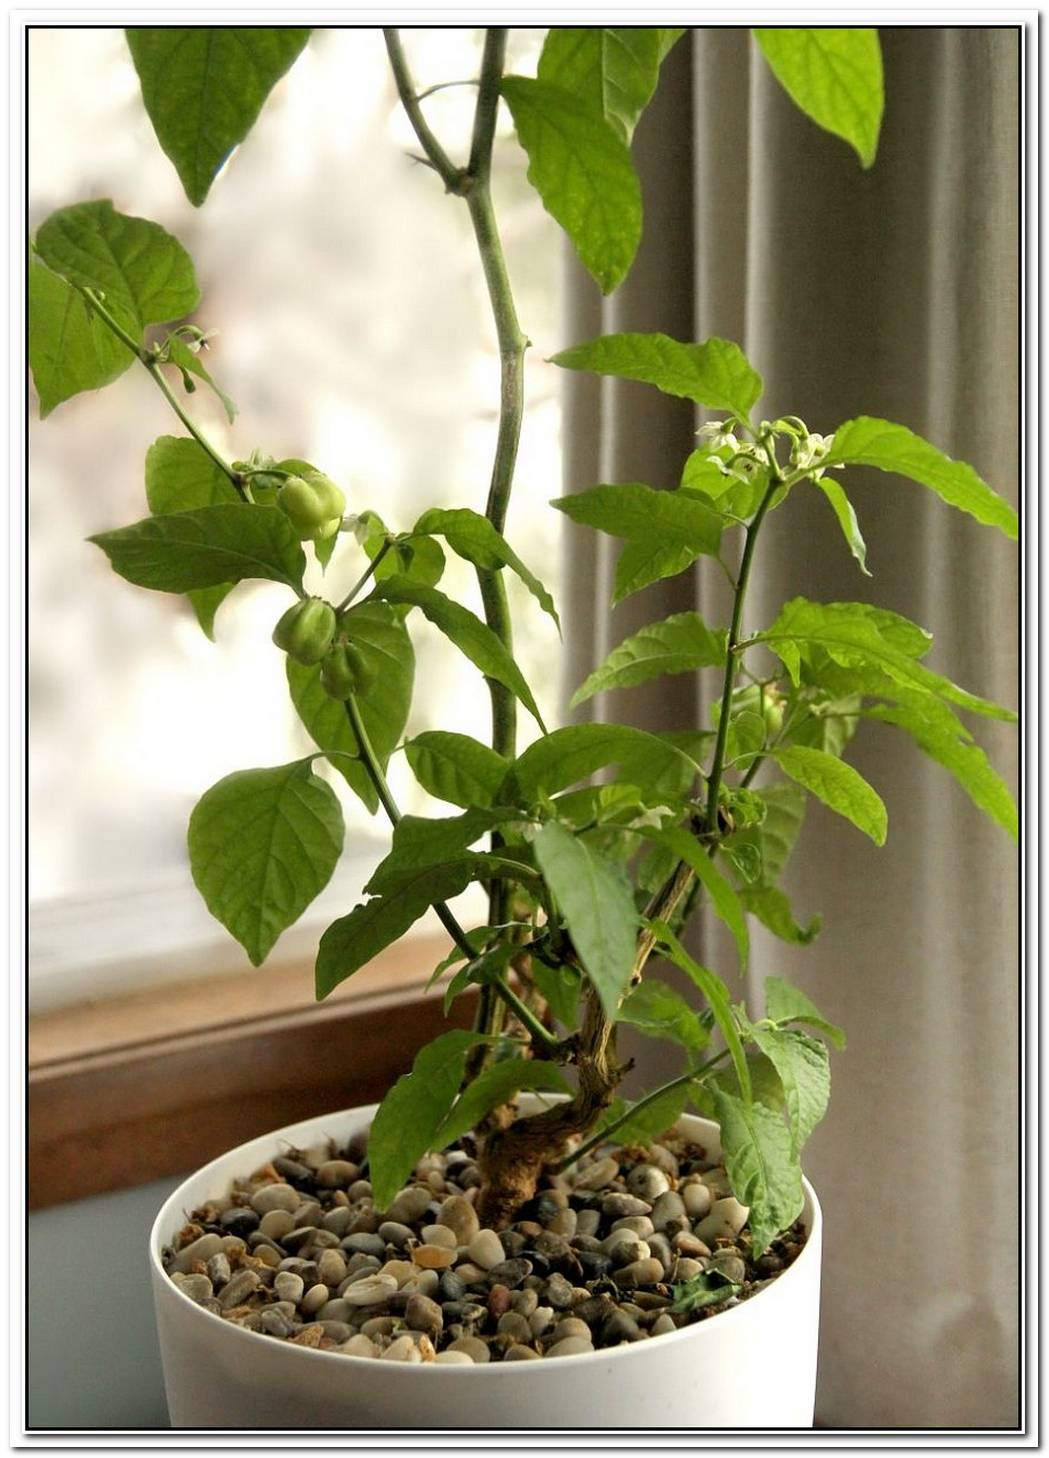 Houseplants 101 Growing Your Own Chilies Indoors